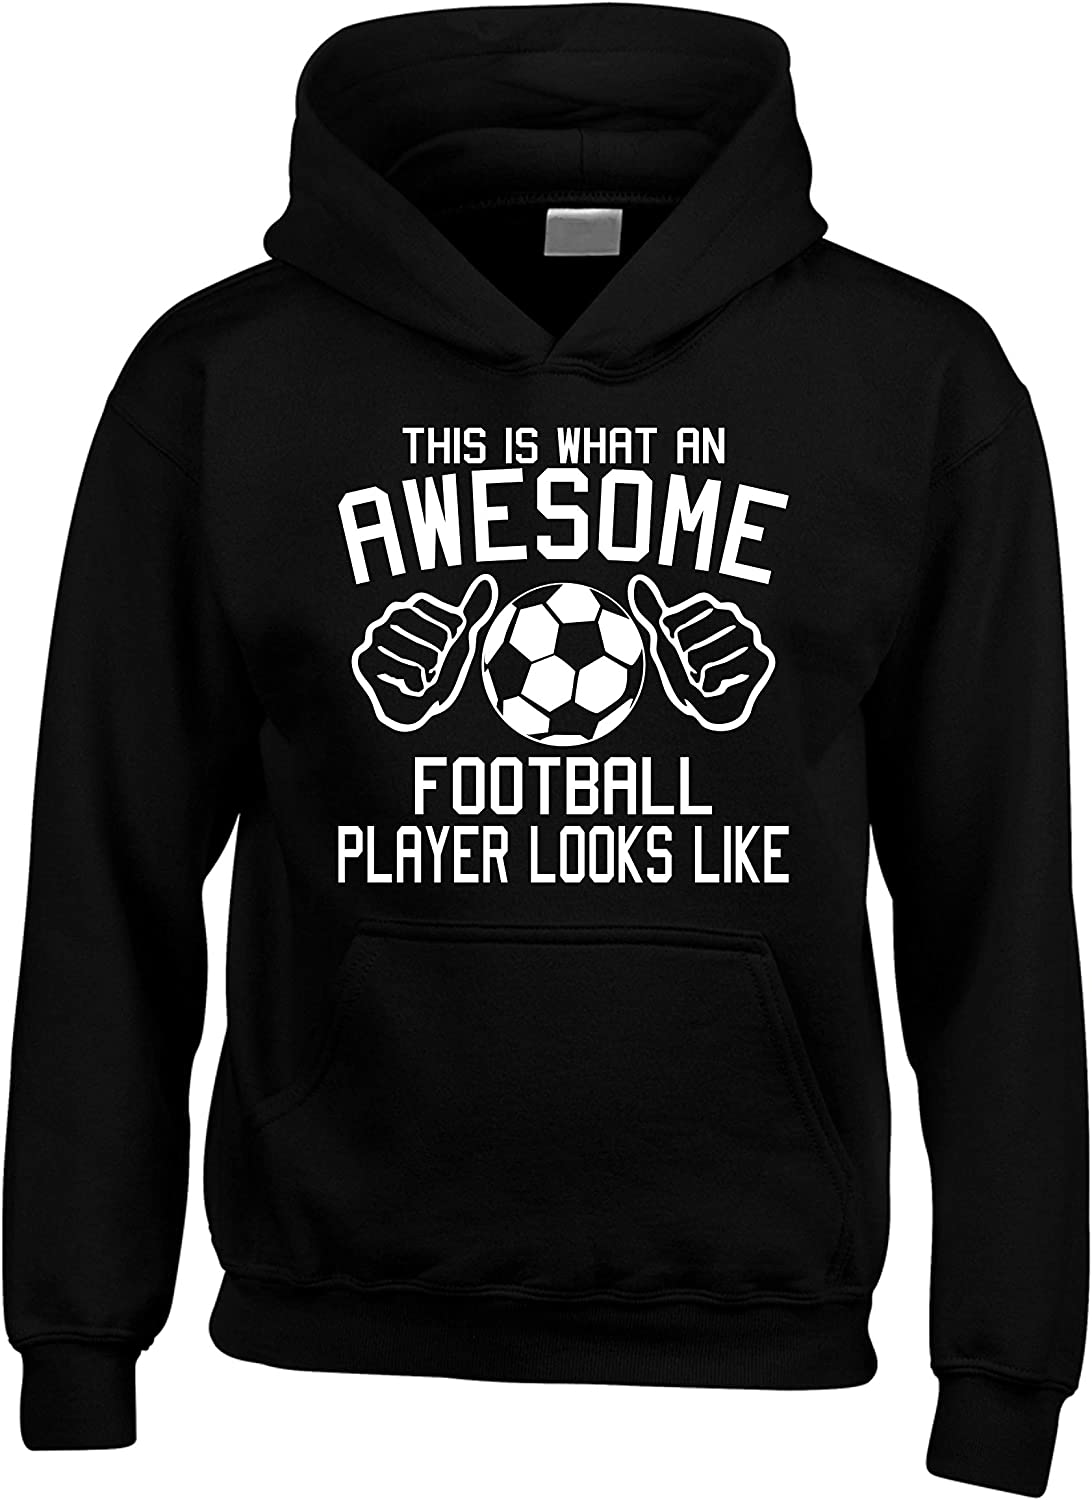 Edward Sinclair 'This is What an Awesome Football Player Looks Like' Sudadera unisex con capucha